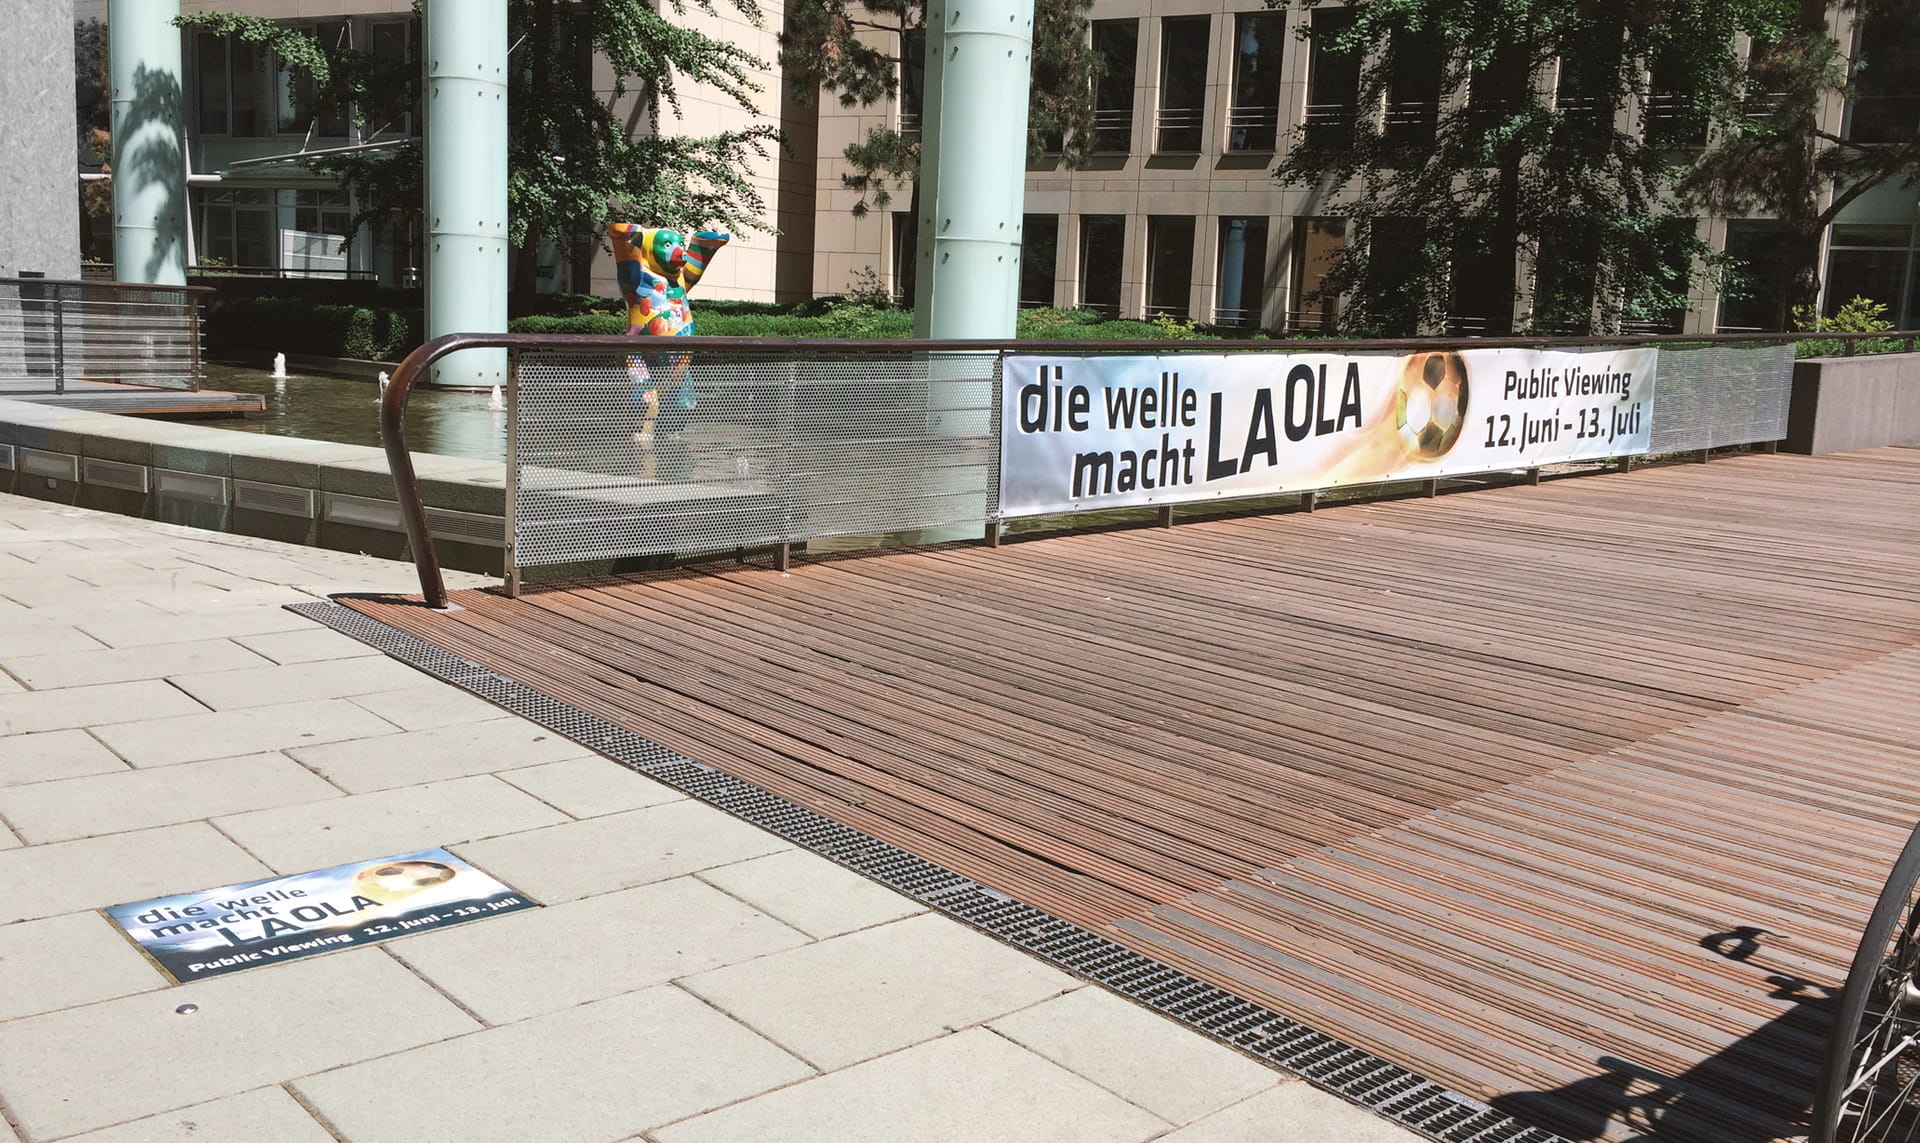 Event advertising with mesh banners and special tile stickers from anplakt in Frankfurt and surroundings